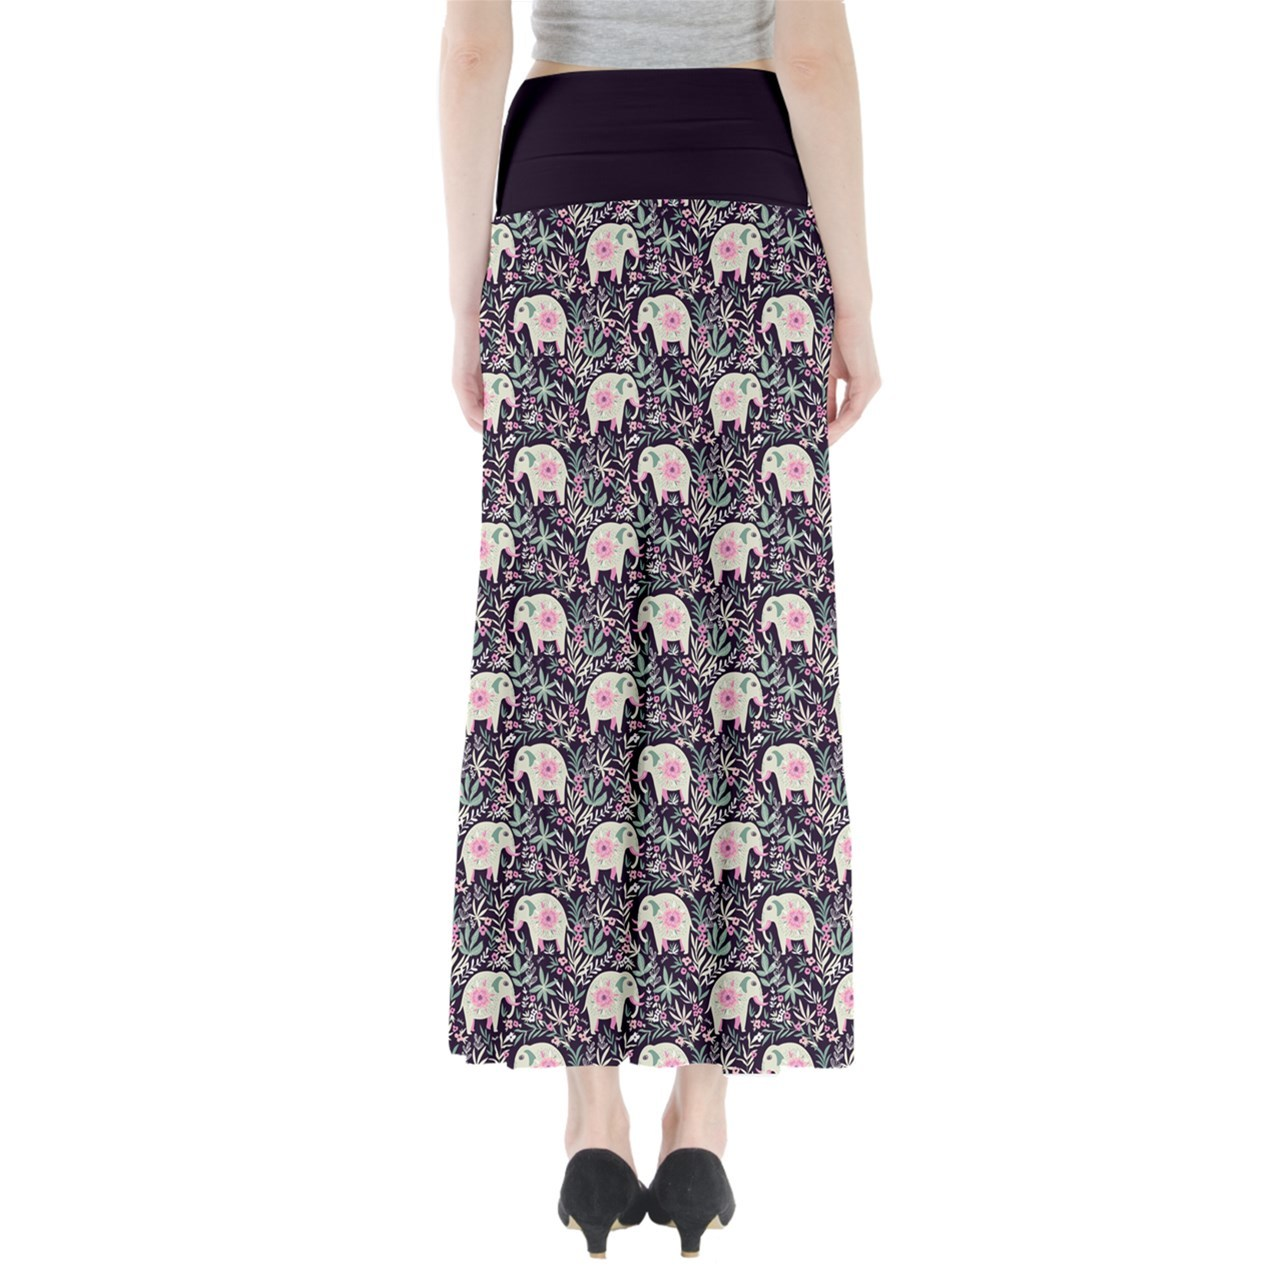 Women's Elephant Printed Summer Casual Stretchy Fit Long Maxi Skirt Size XS-3XL